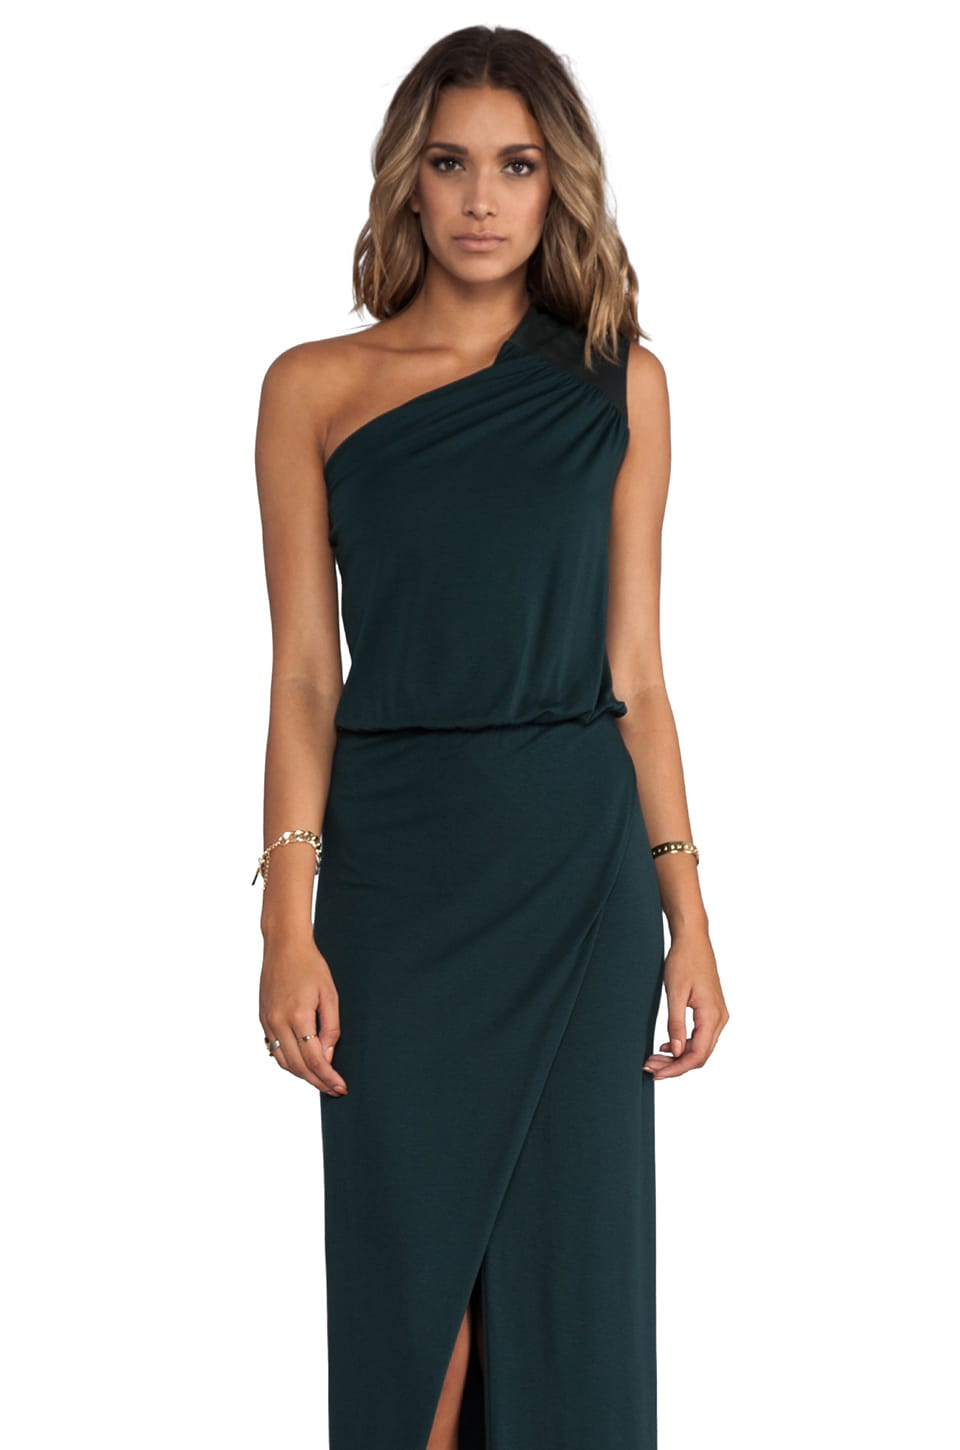 Mason by Michelle Mason Asymmetrical Gown in Hunter